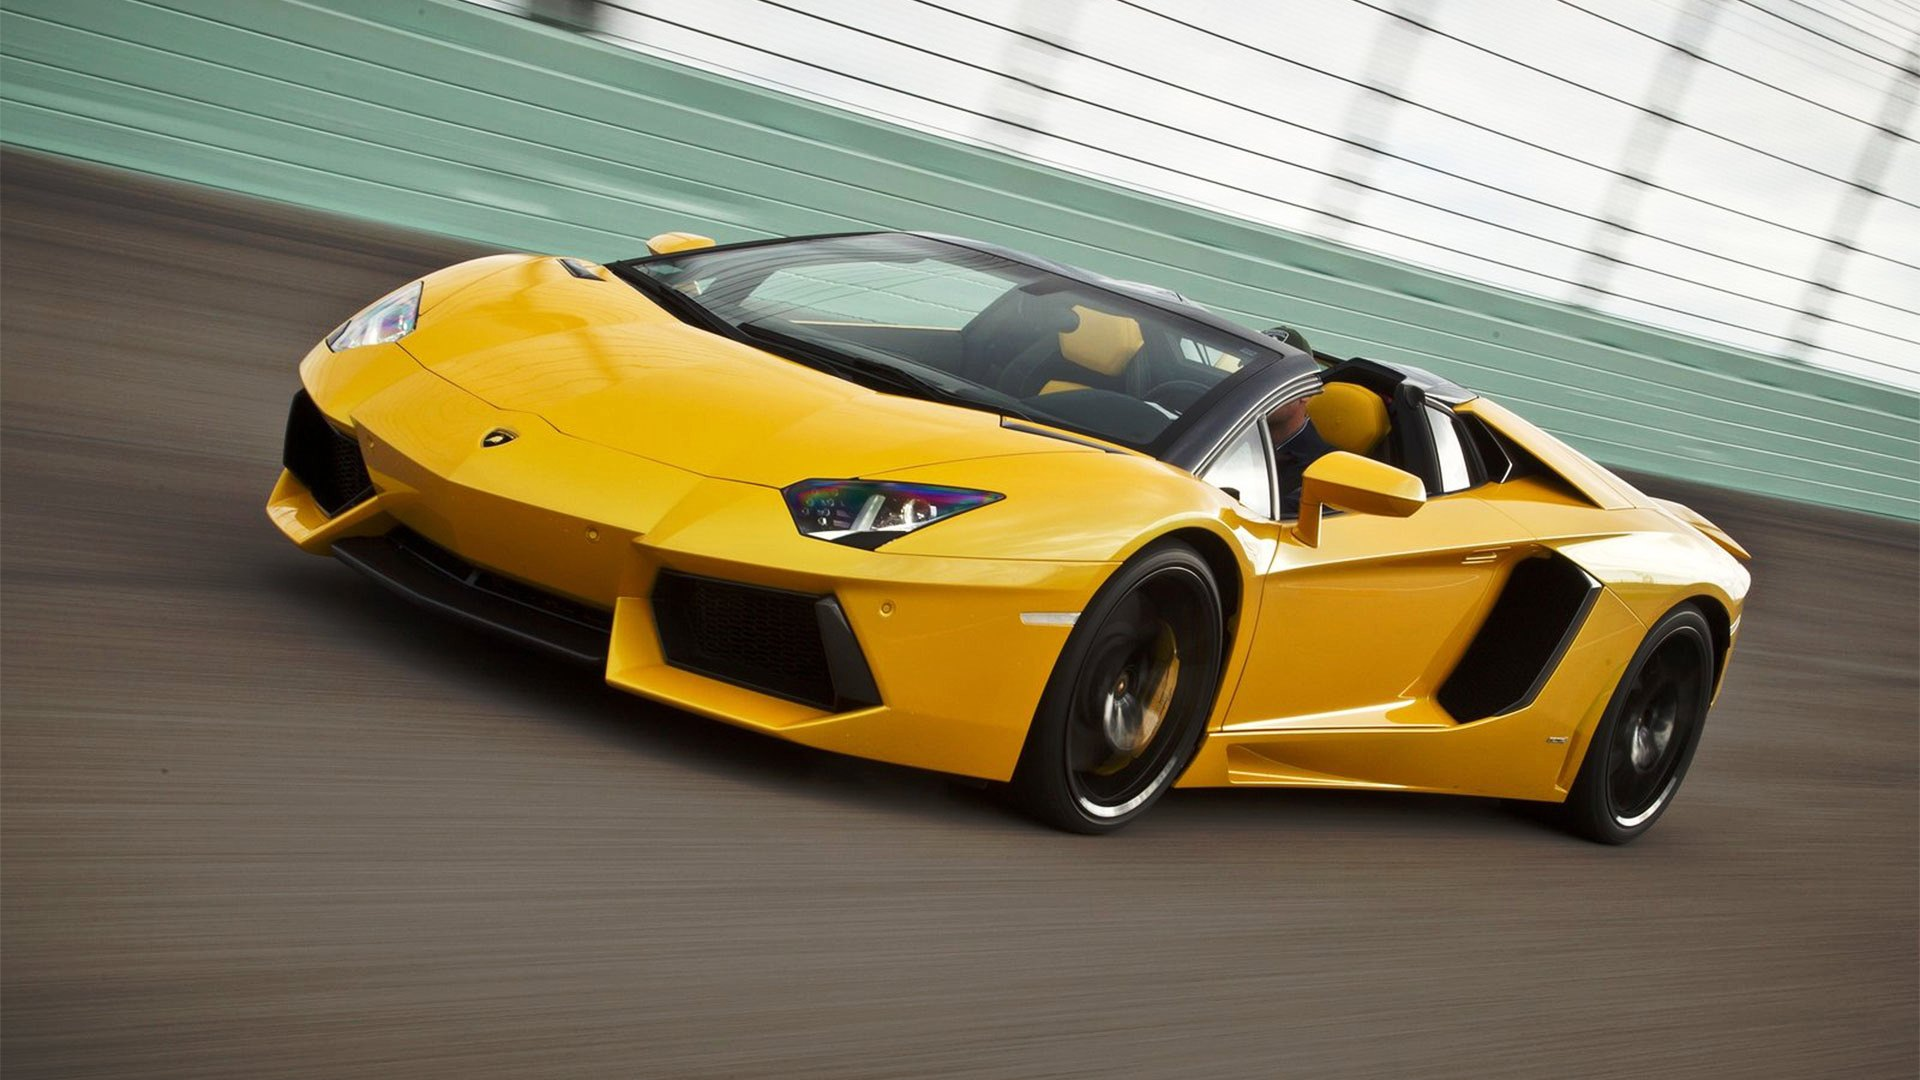 sellanycarcom sell your car in 30minlamborghini aventador 2014 65l v12 coupe sellanycarcom sell your car in 30min